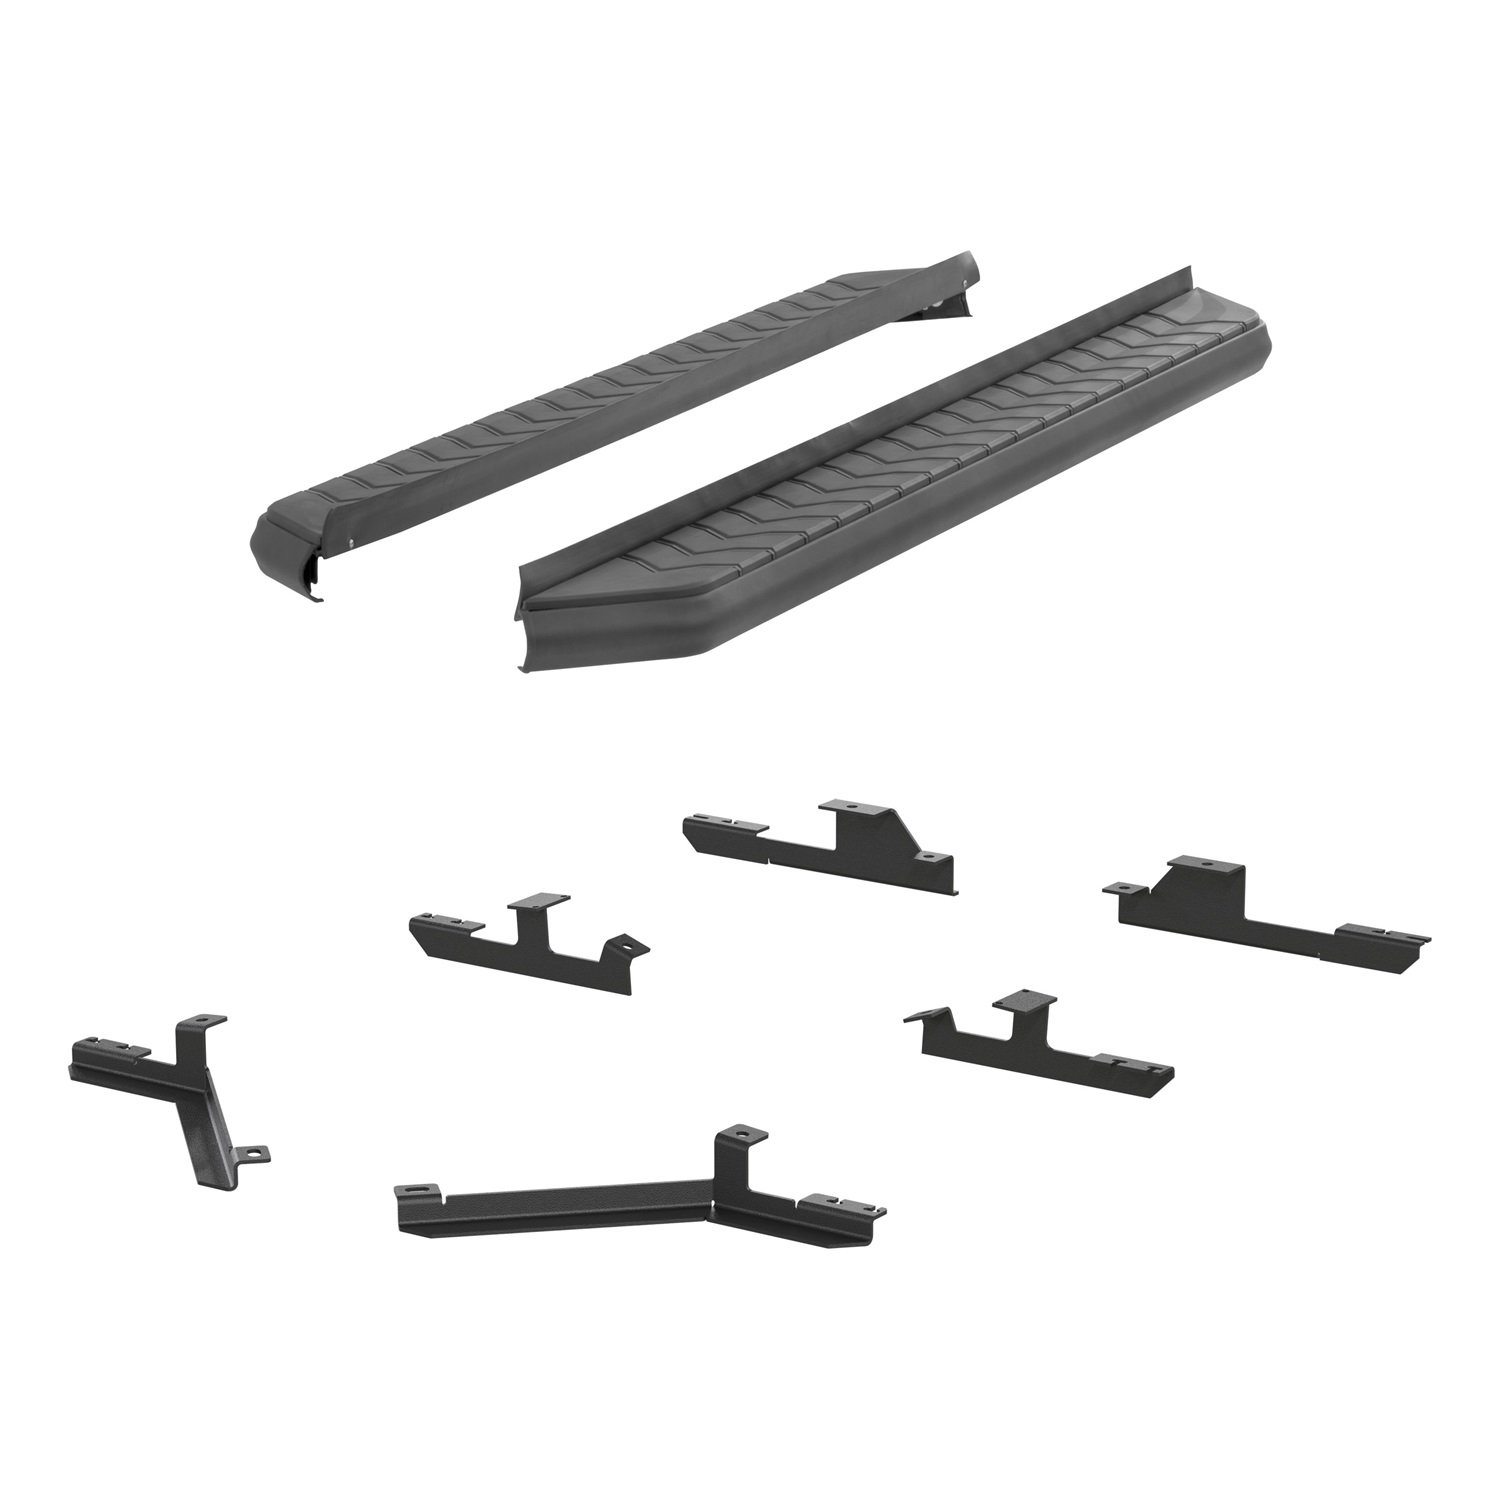 Aries 2061022 5 AeroTread Running Board with Brackets